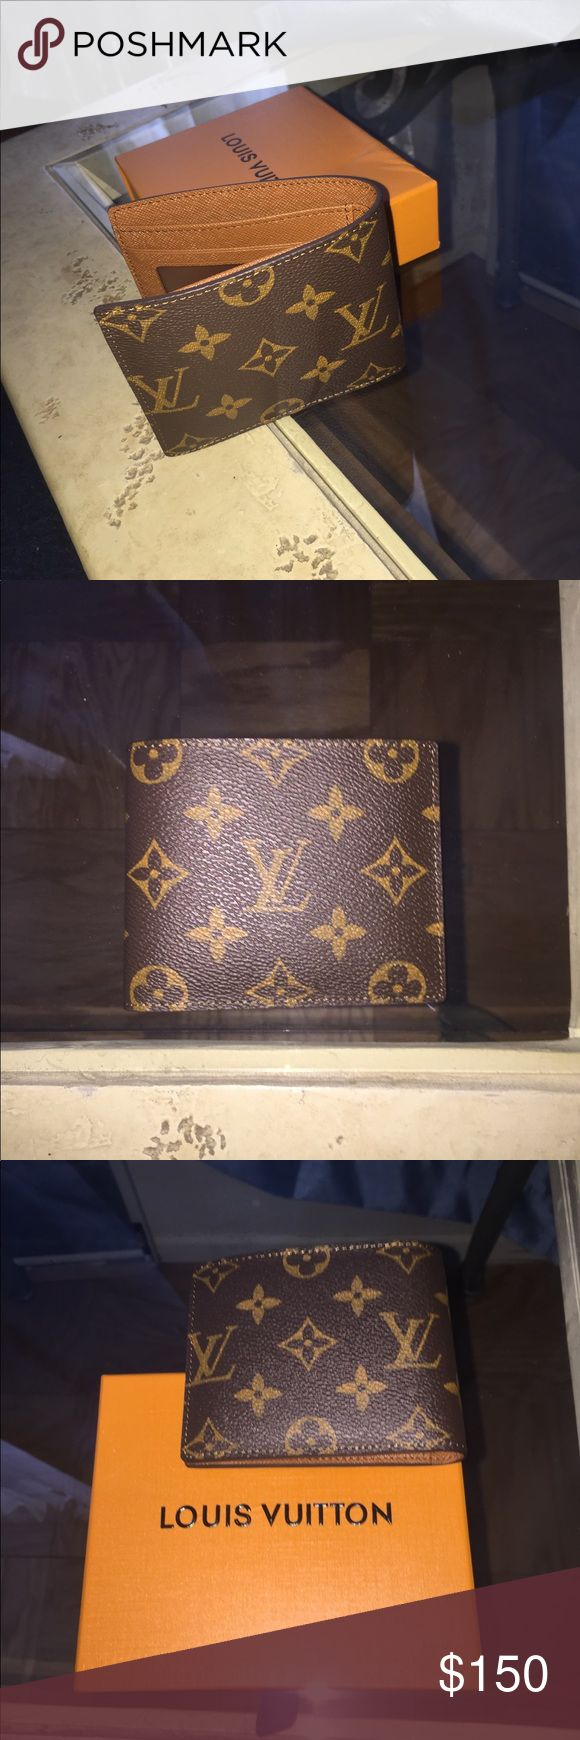 Brand New Louis Vuitton Mens Wallet Hello this is a brand new louis vuitton mens wallet. Im selling for the best deals on this platform, i have the fastest shipping and have sold many products on here because i always provide the best deals. If interested please leave your number in the comments and i will get back to you immediately! I always provide the best customer service and i am welcome to negotiating any reasonable prices necessary. Serious professional people only please, have a…